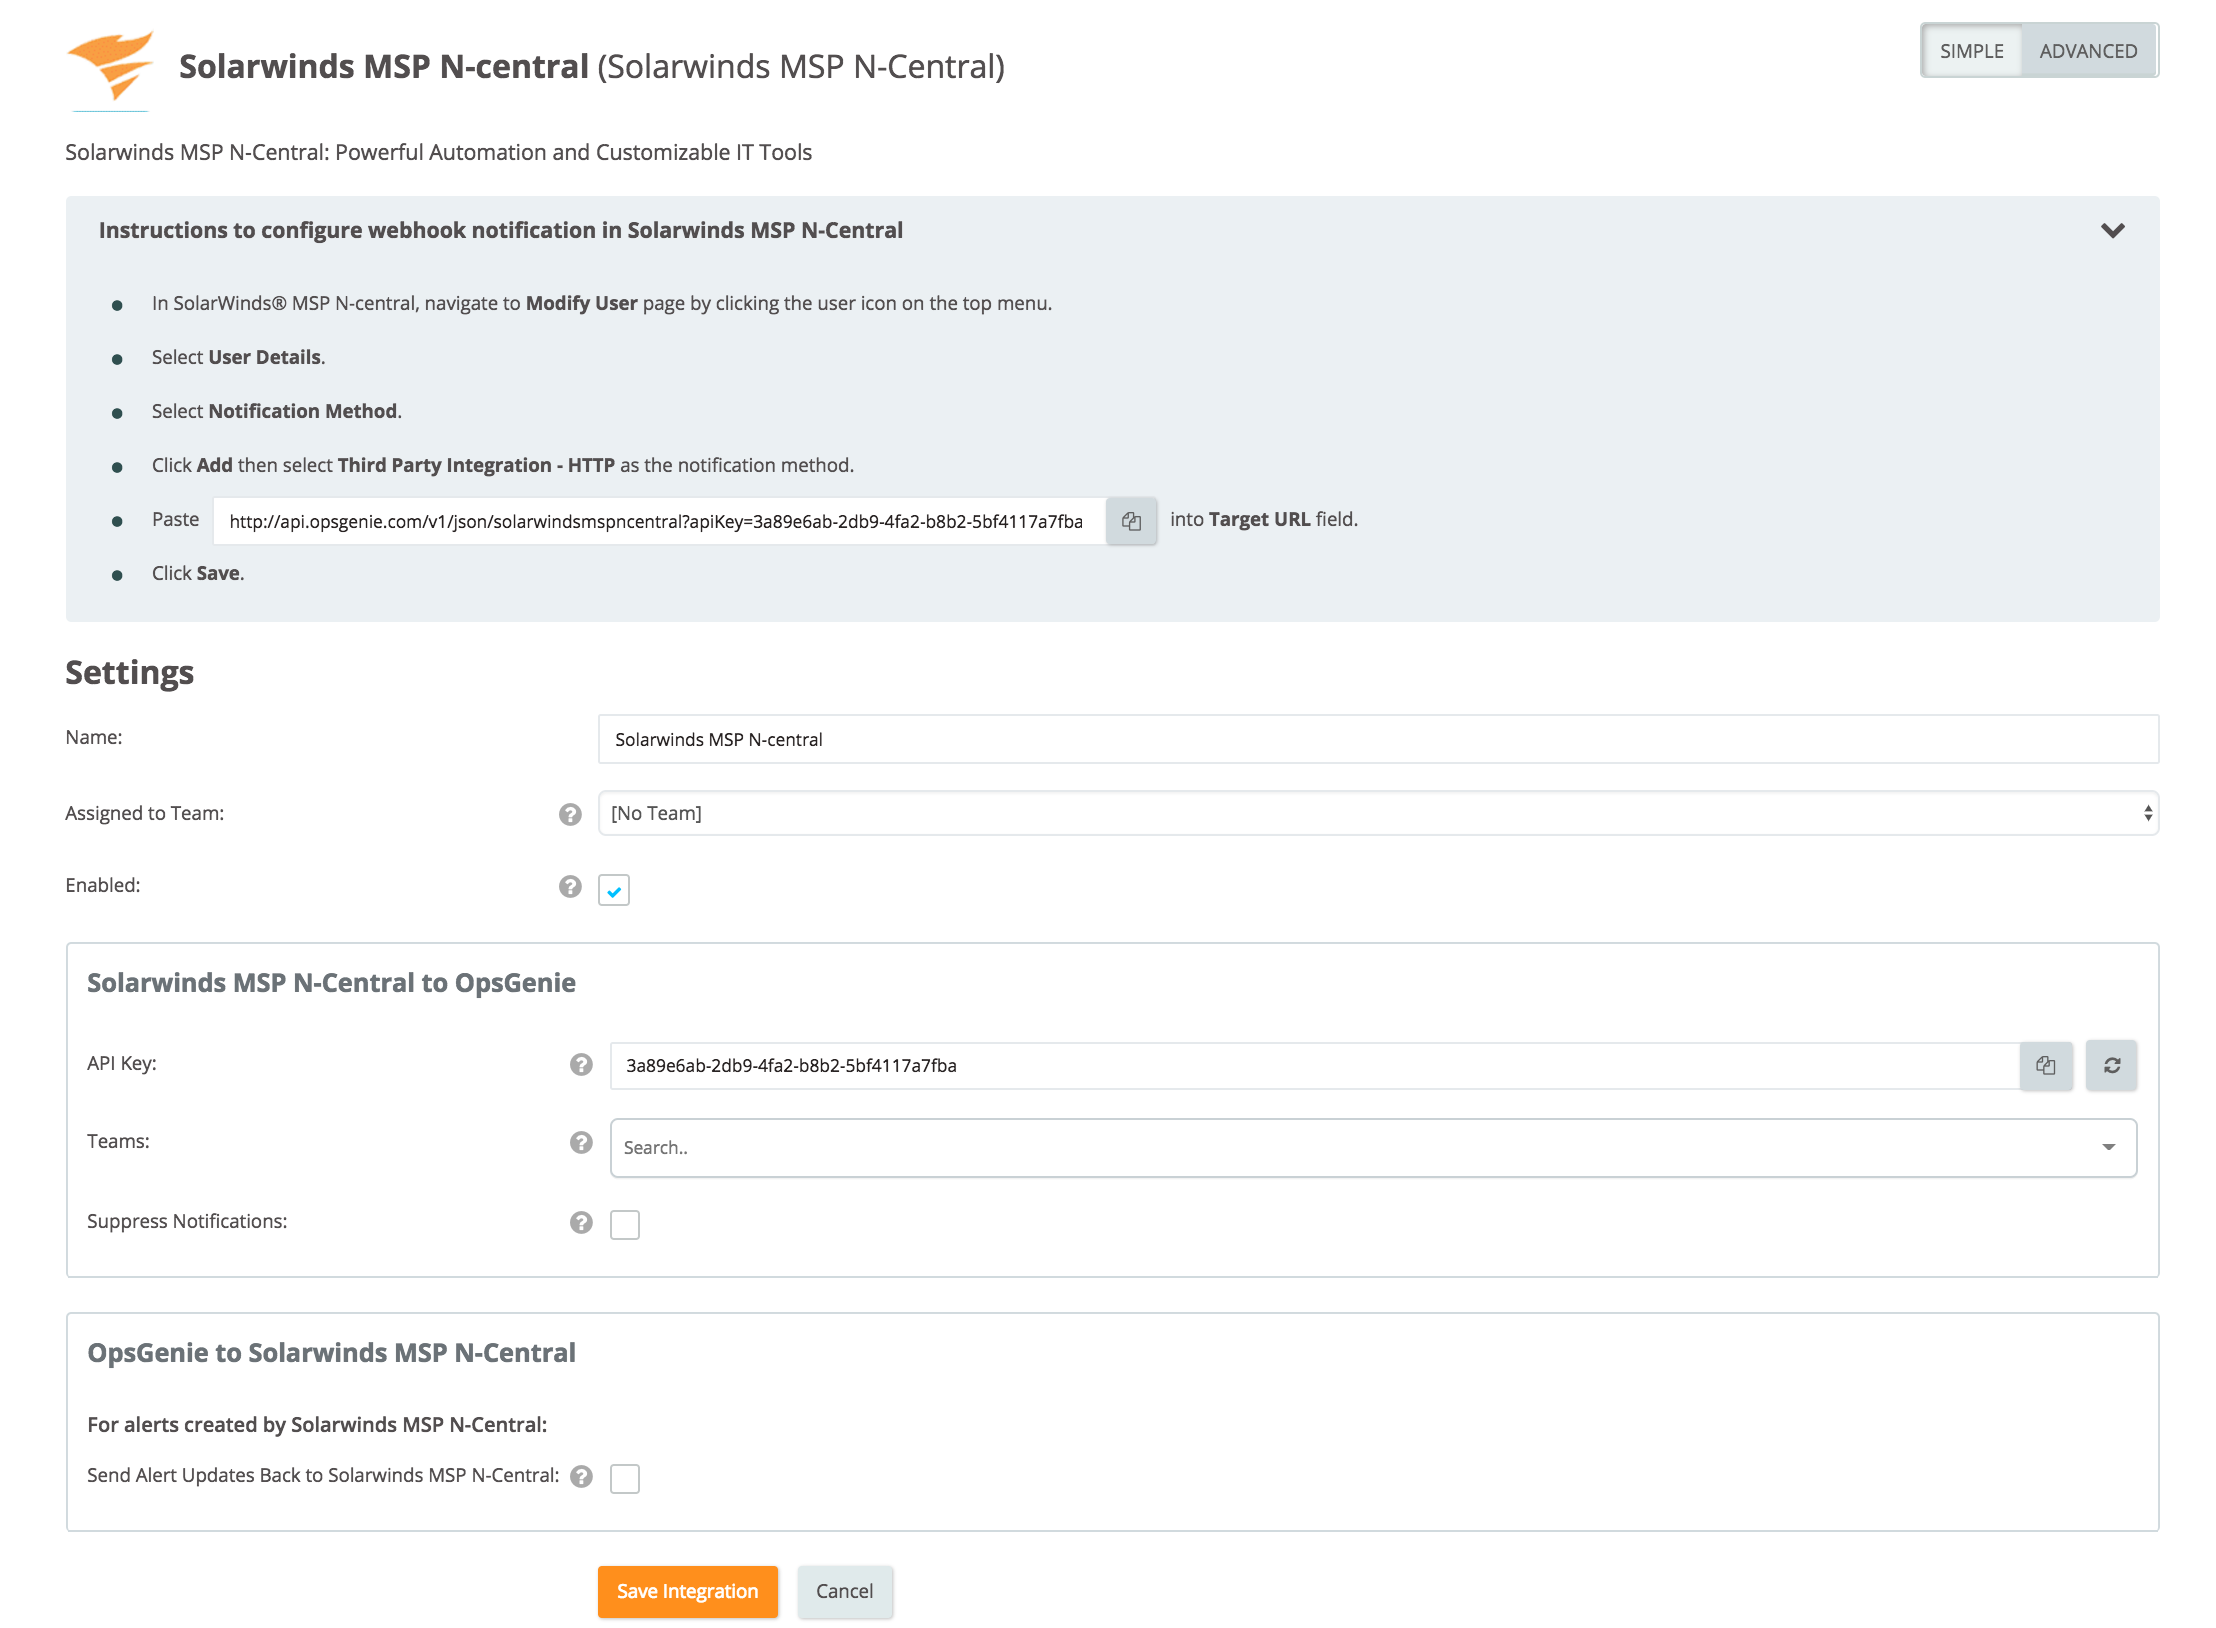 Solarwinds MSP N-Central integration settings